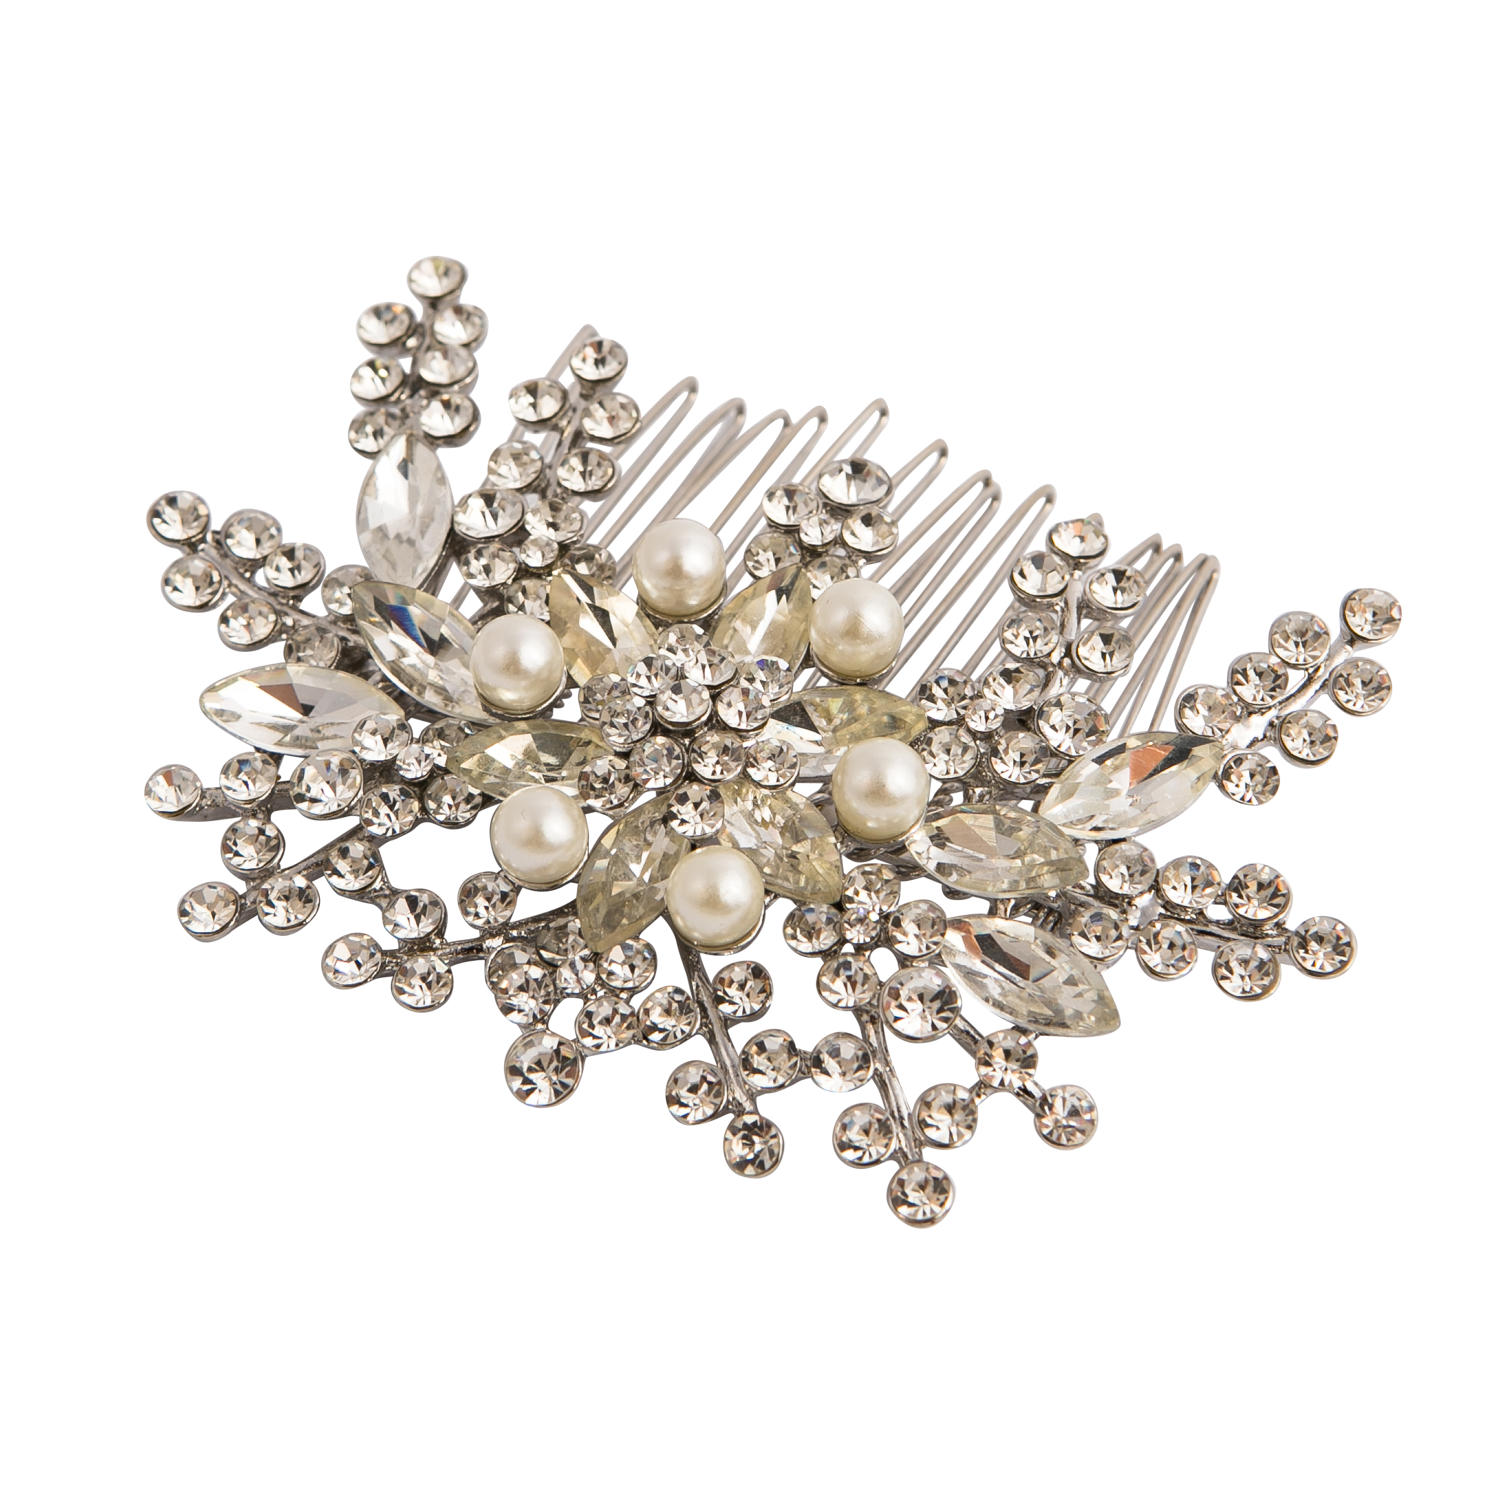 Silver Plated Crystal & Pearl Hair Comb